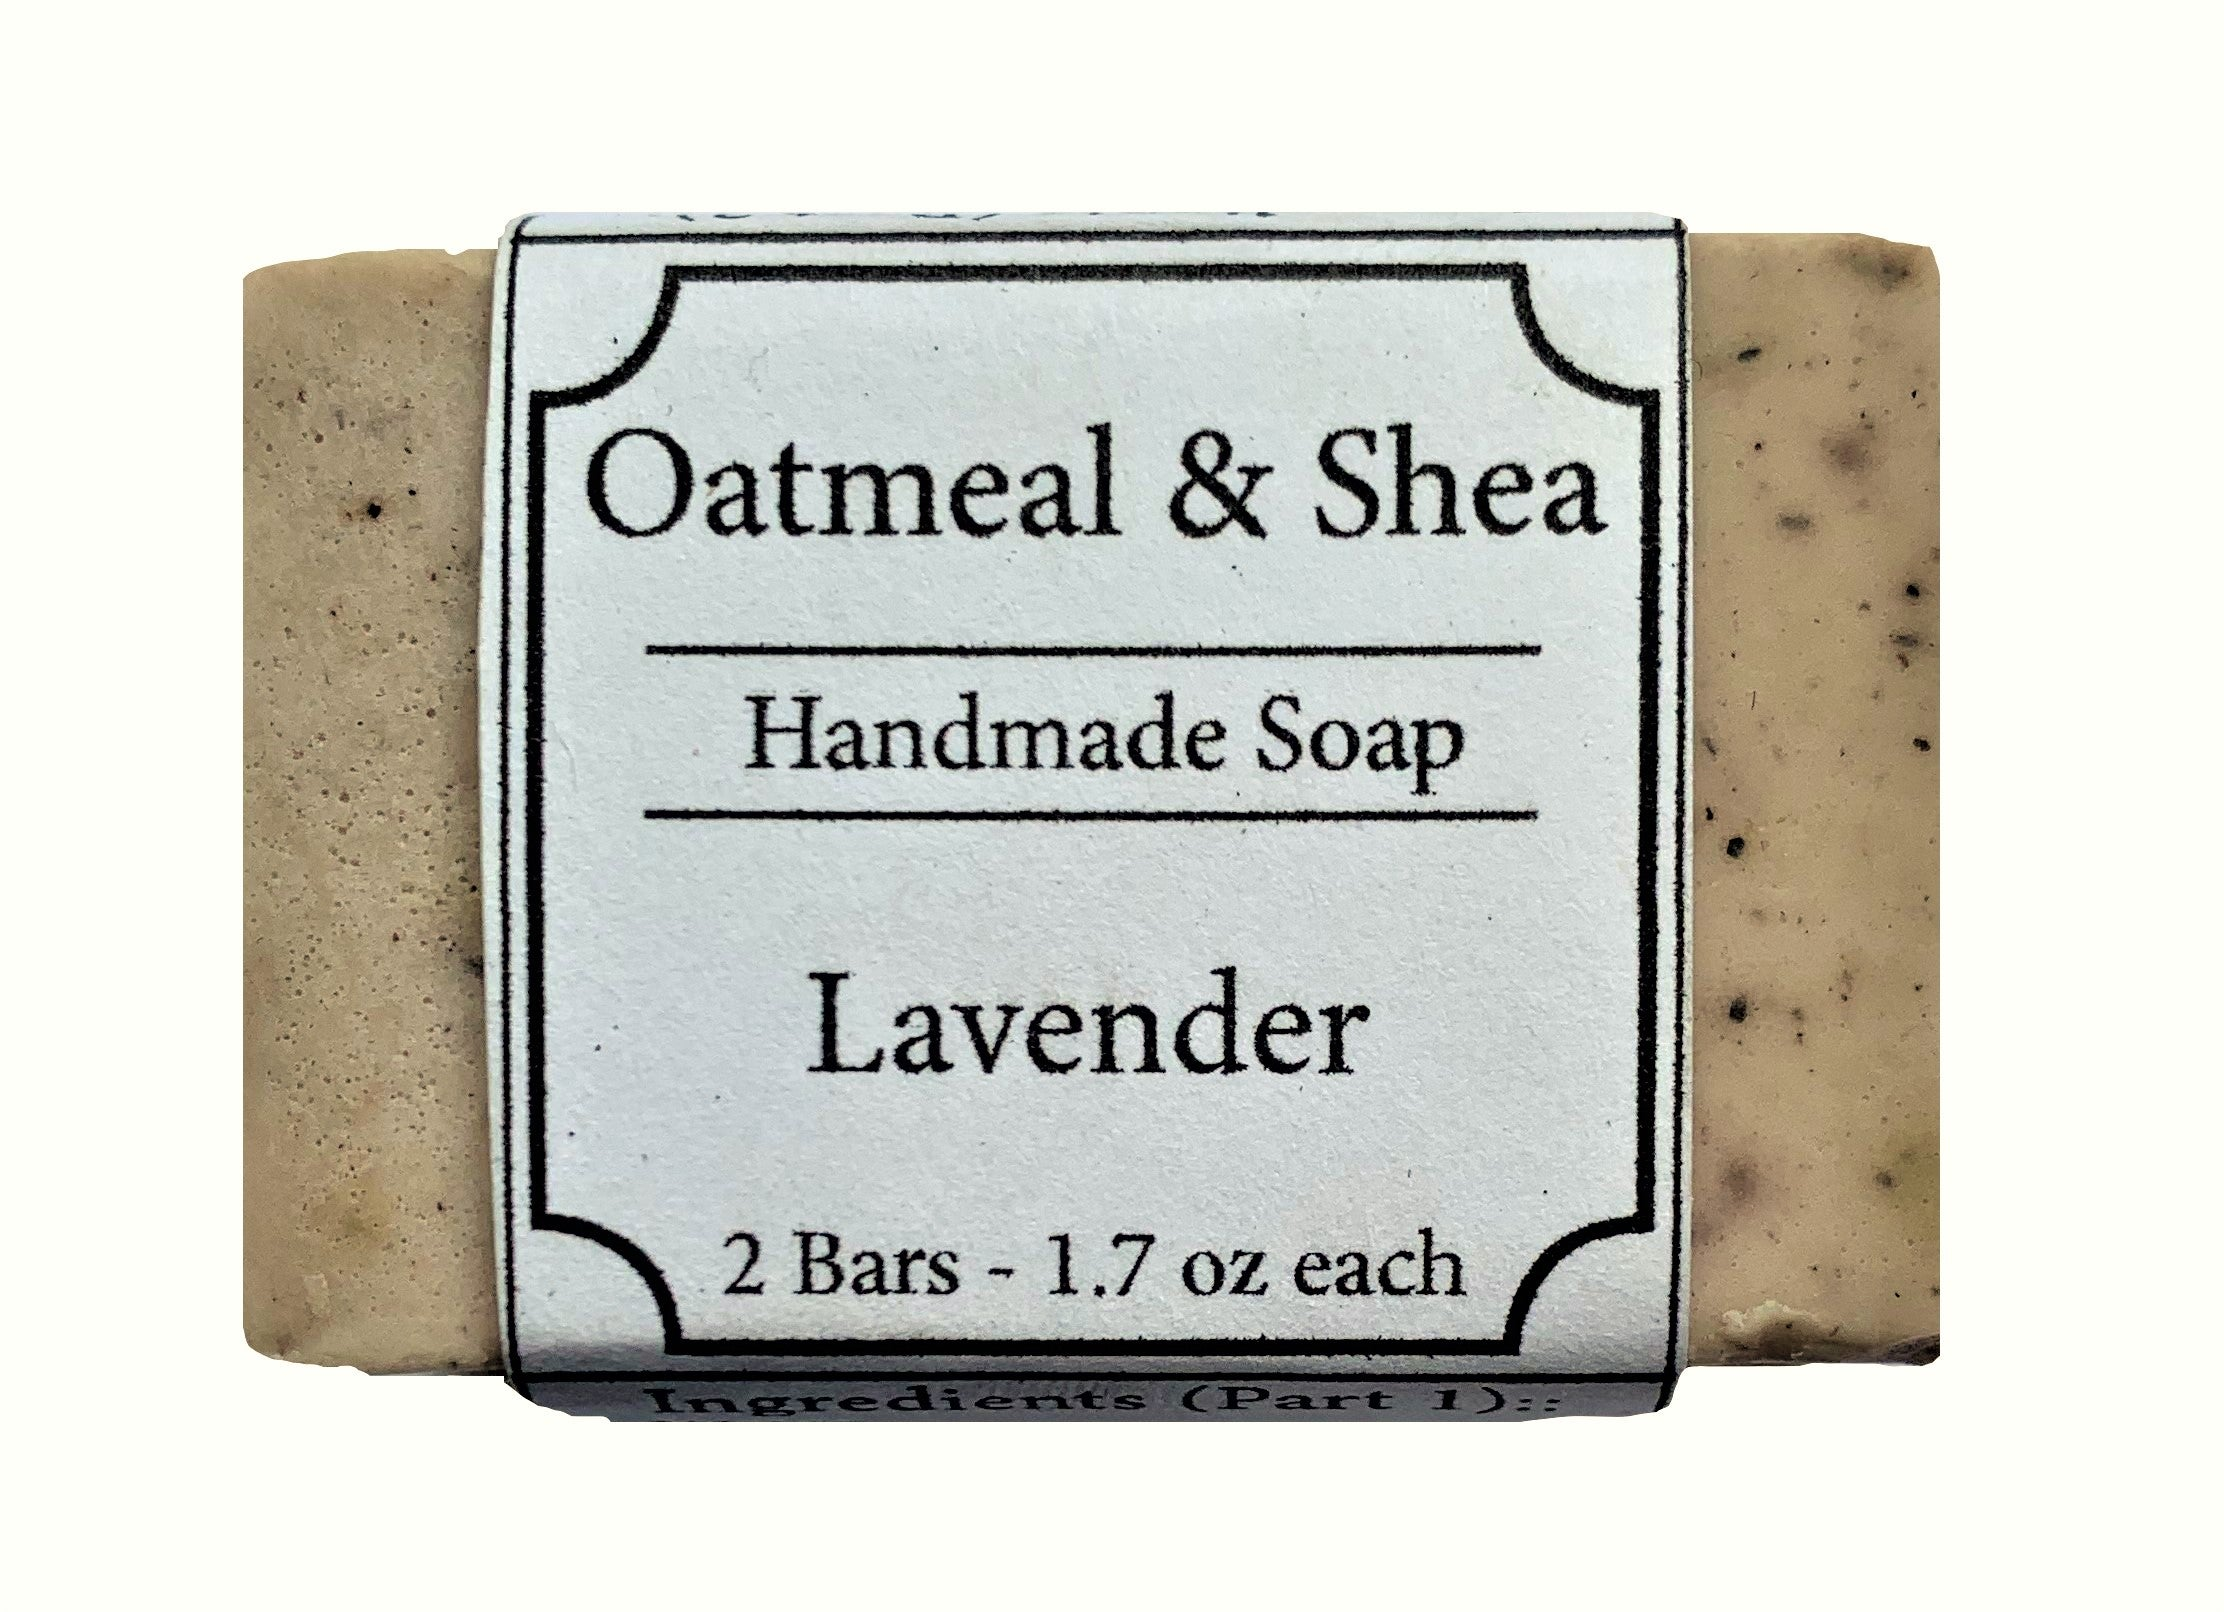 Lavender Scented, Oatmeal & Shea Organic Face and Body Soap